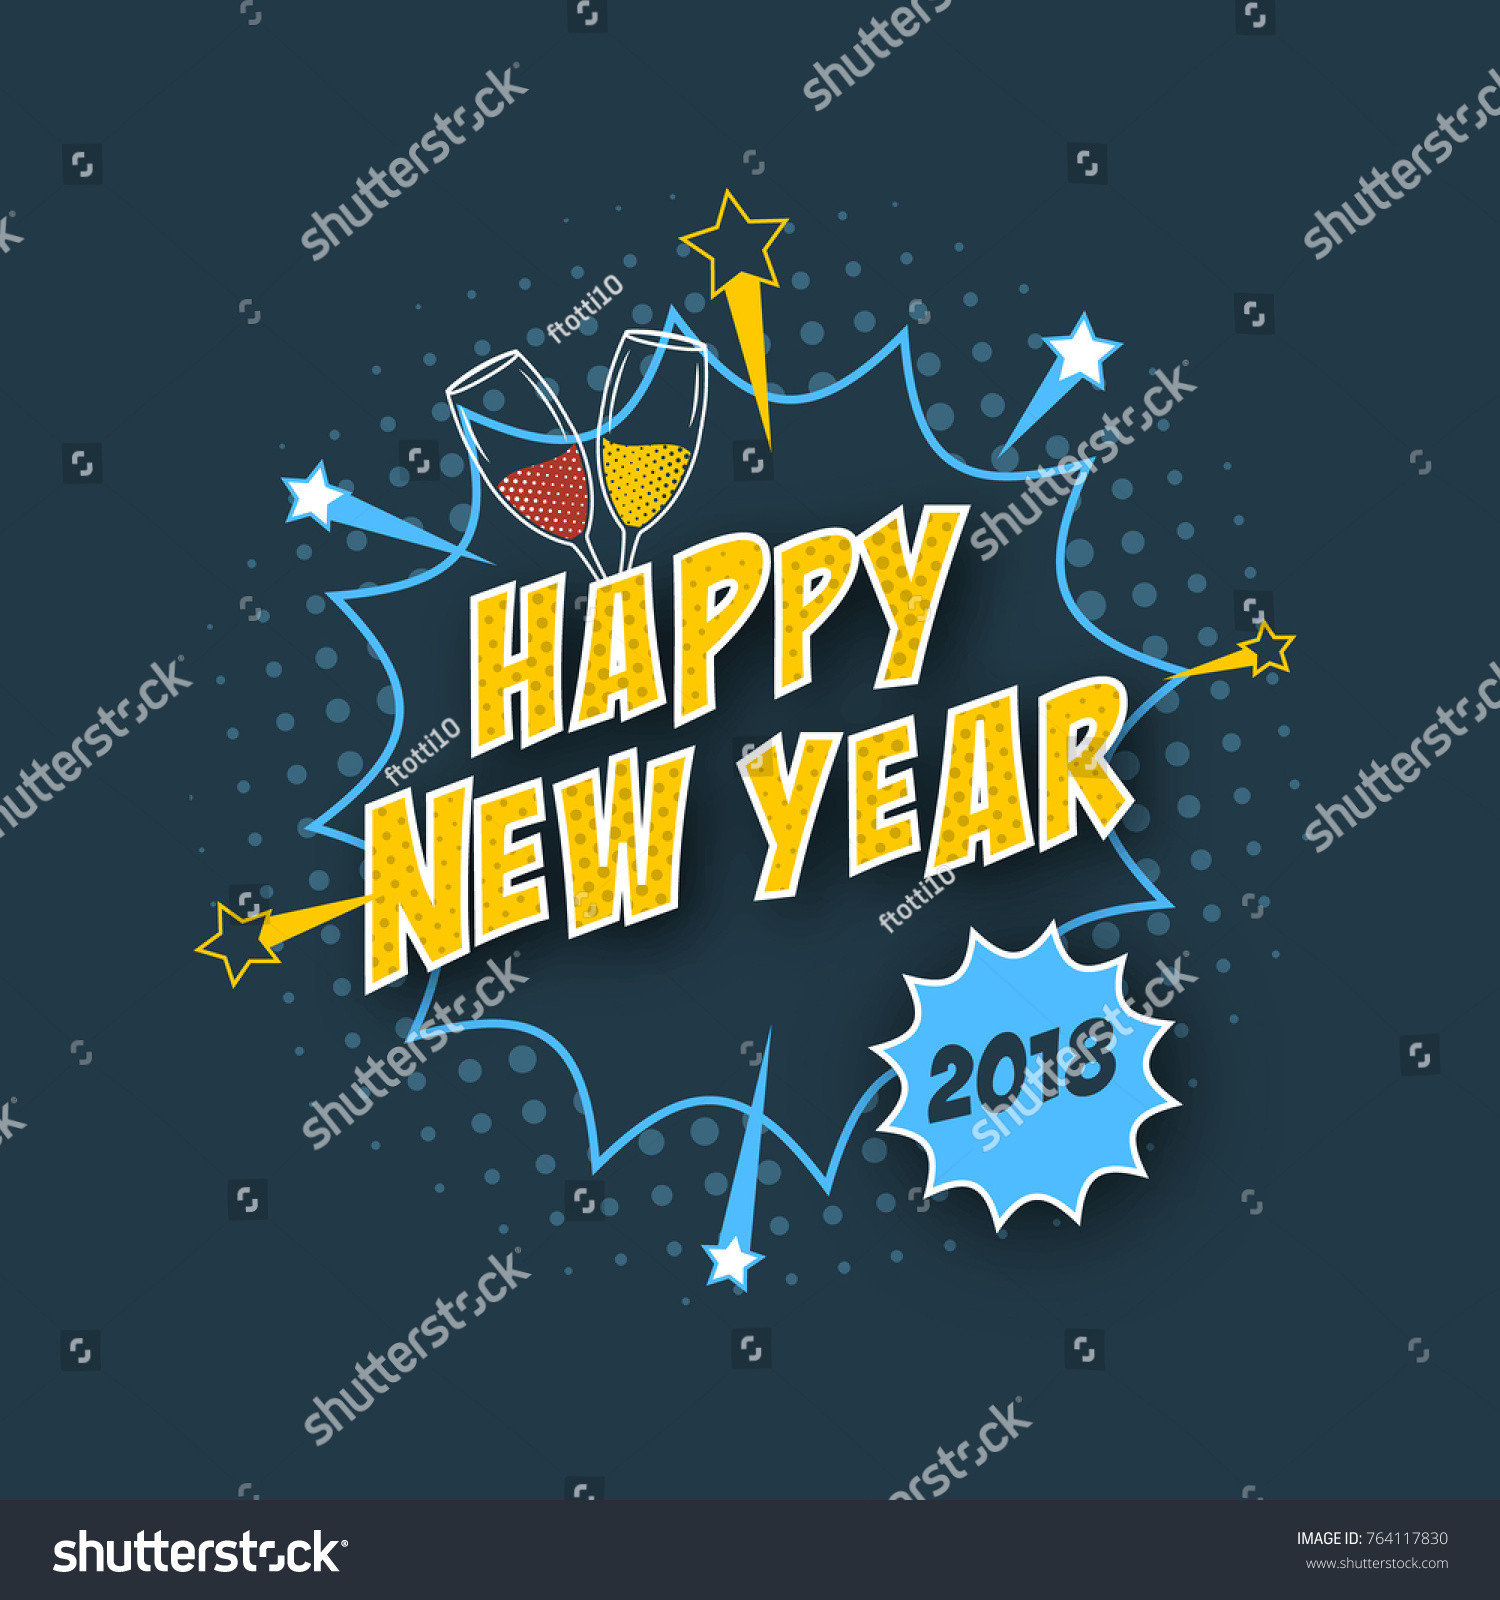 Happy New Year 2018 Greeting Card Stock Vector 764117830 Shutterstock